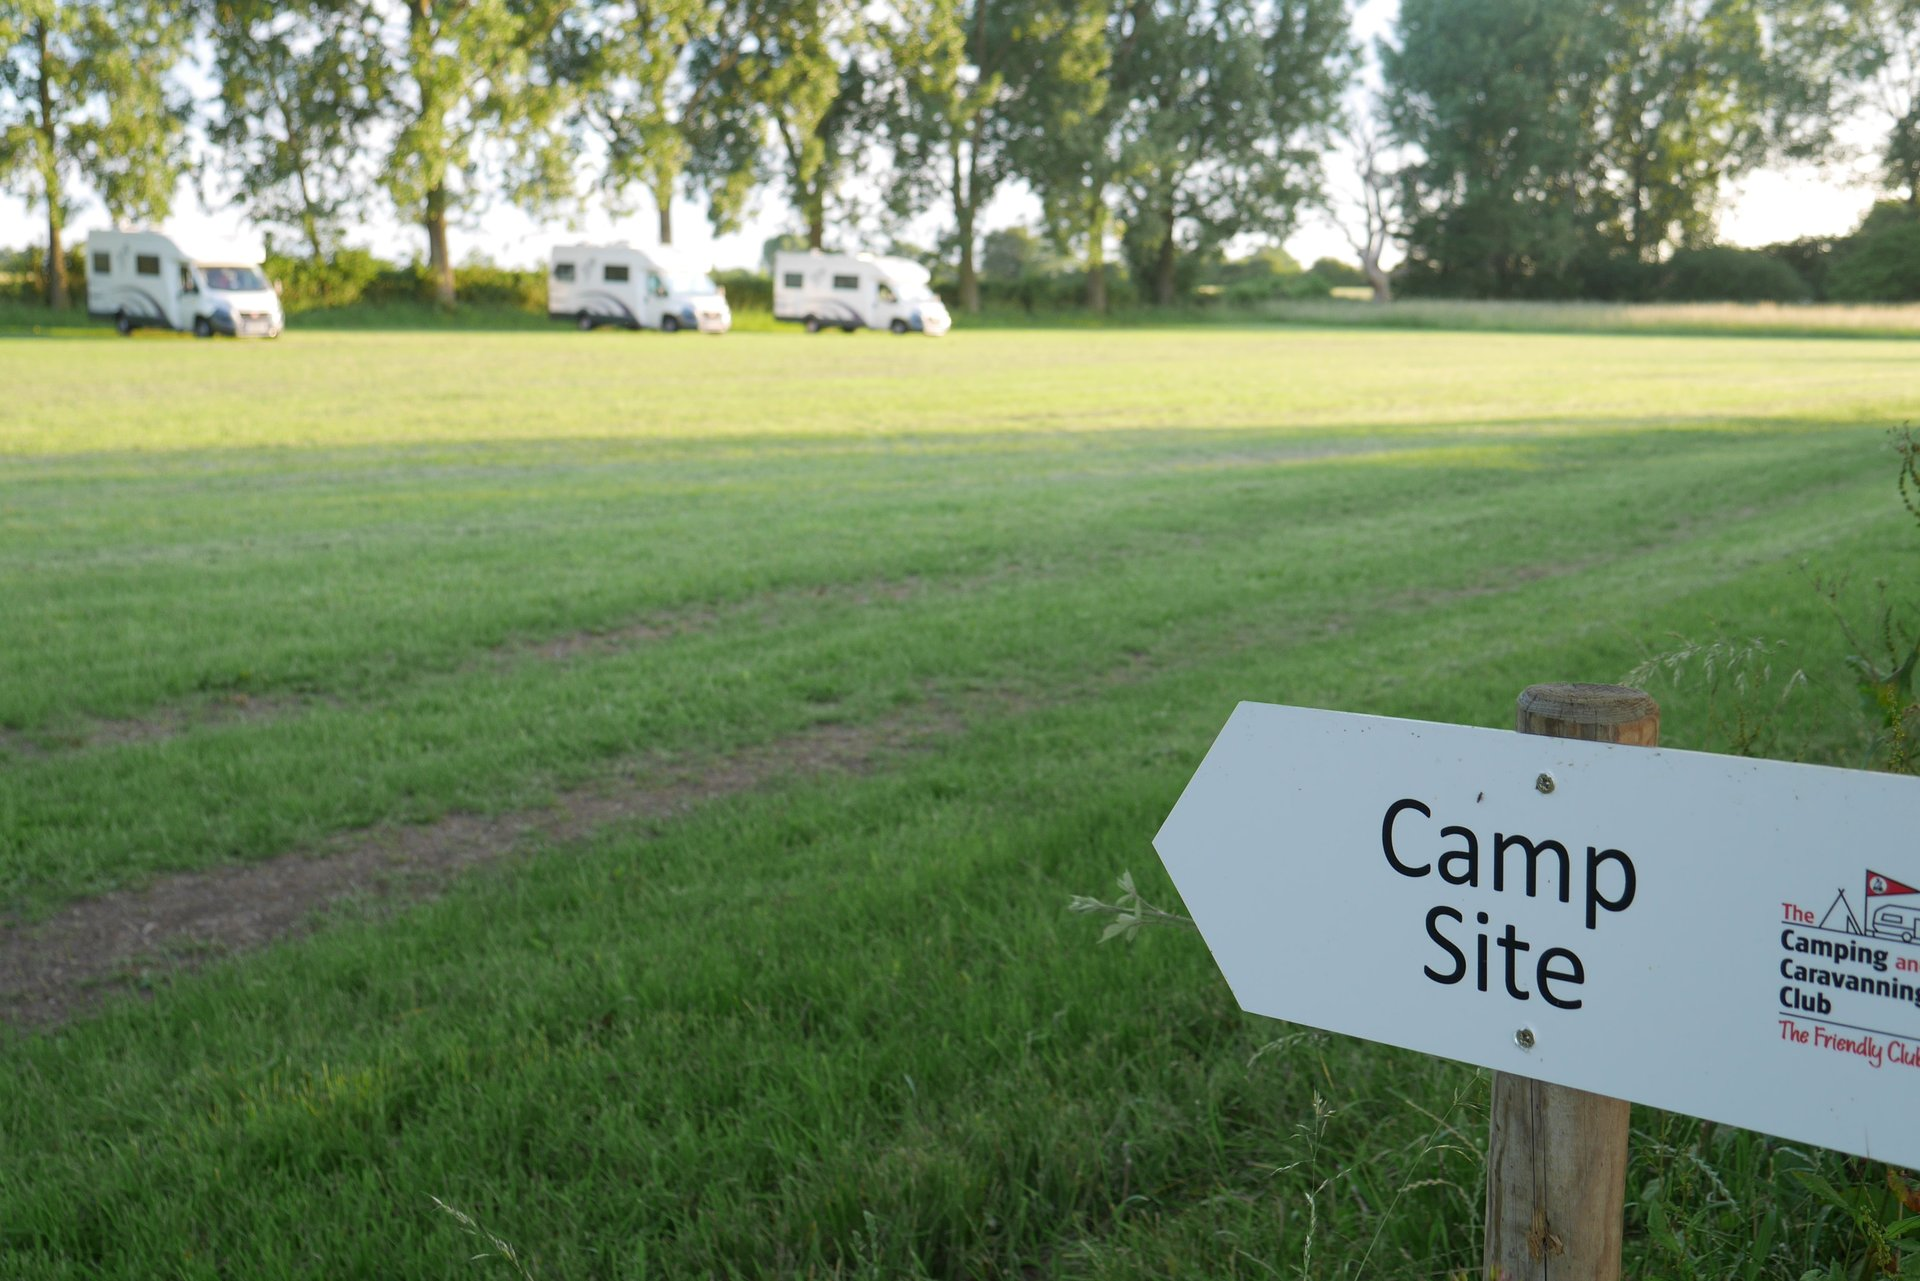 camping and caravanning club campsite finchingfield essex